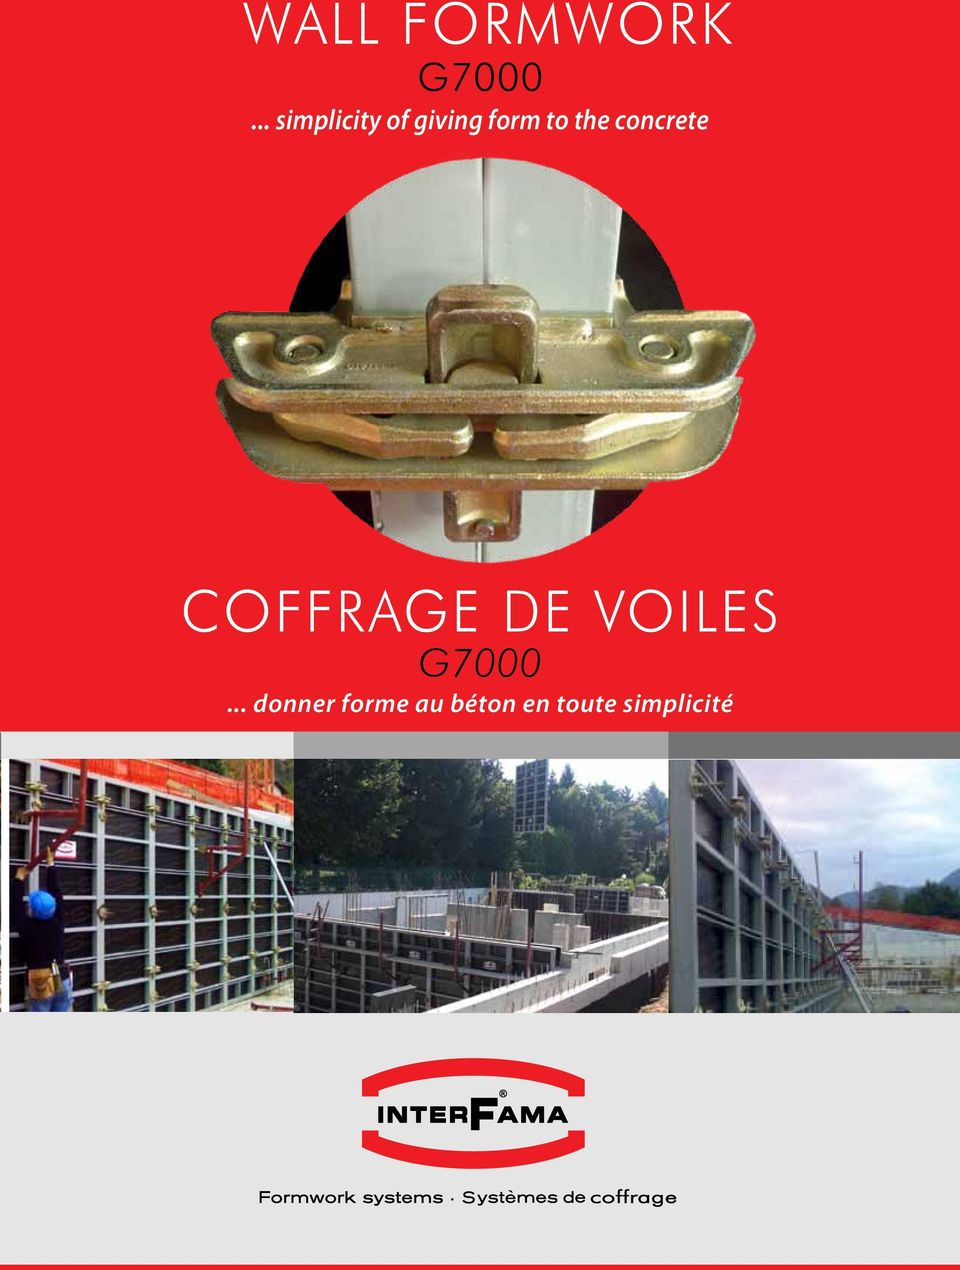 concrete COFFRAGE DE VOILES G7000.